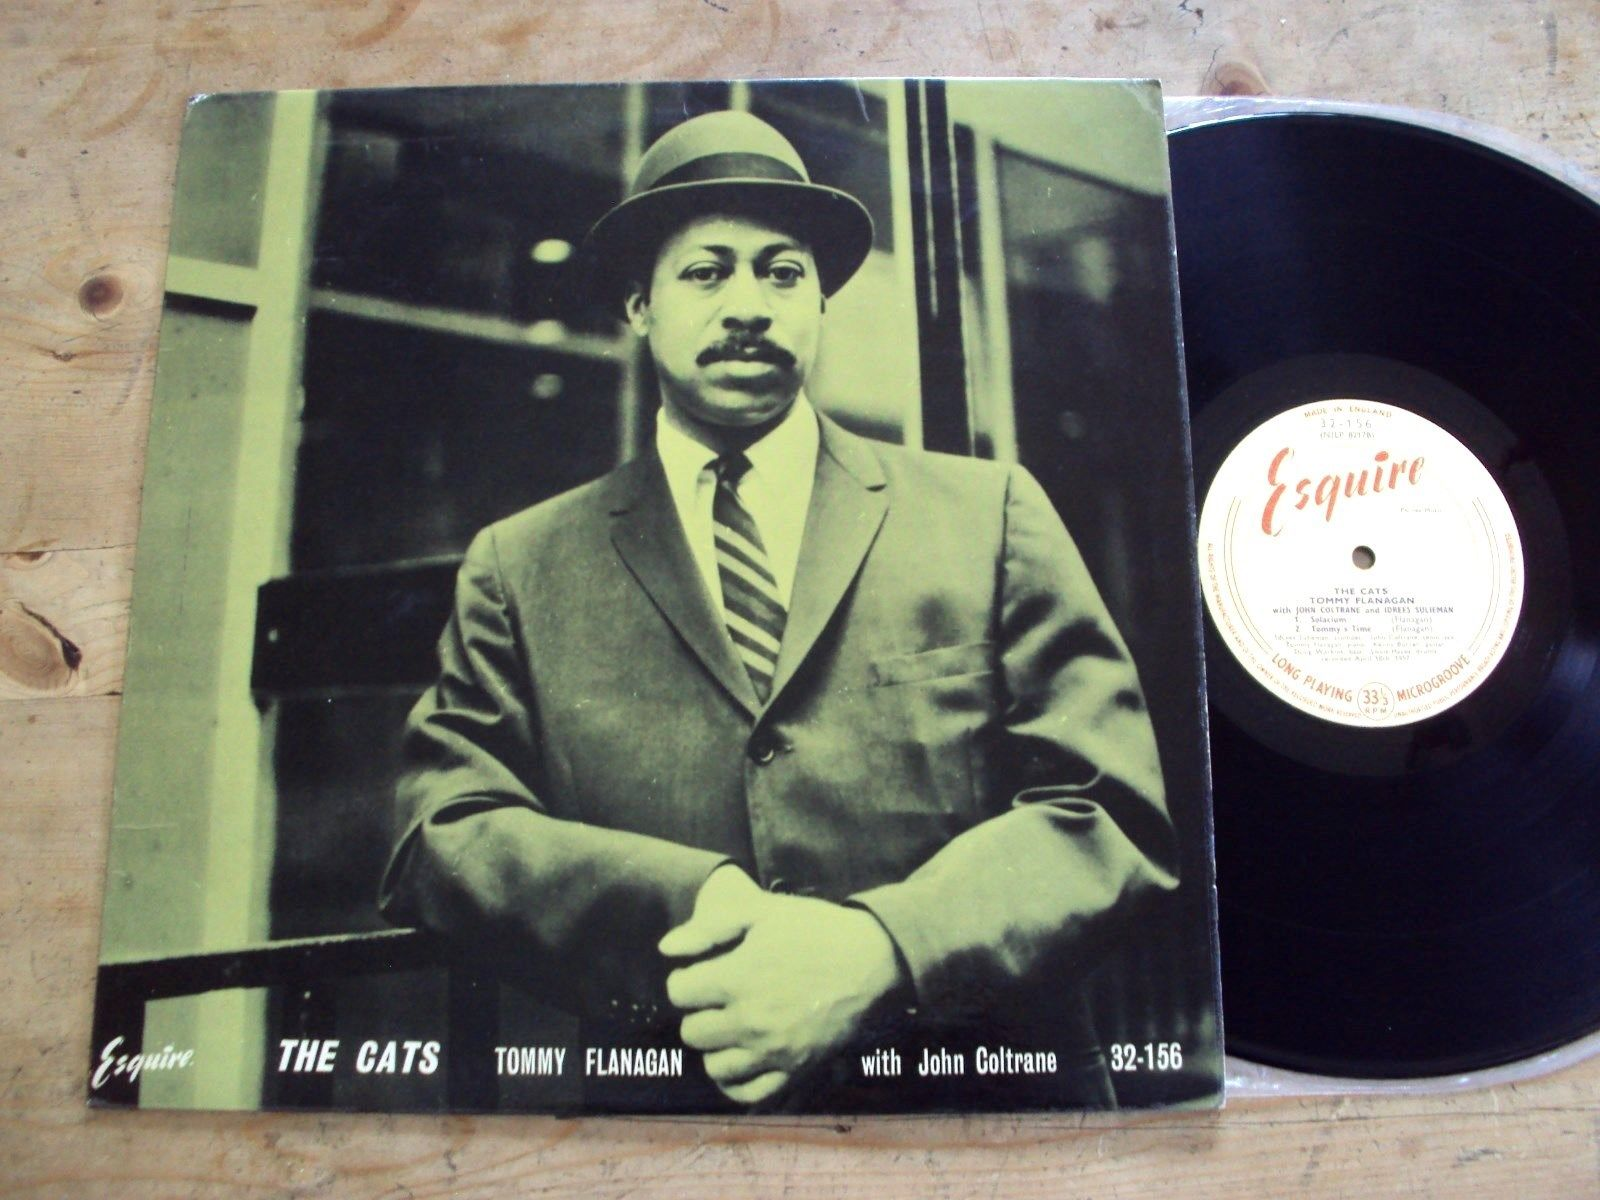 TOMMY FLANAGAN - THE CATS LP UK 1st Esquire 32-156 Jazz John Coltrane LOVELY